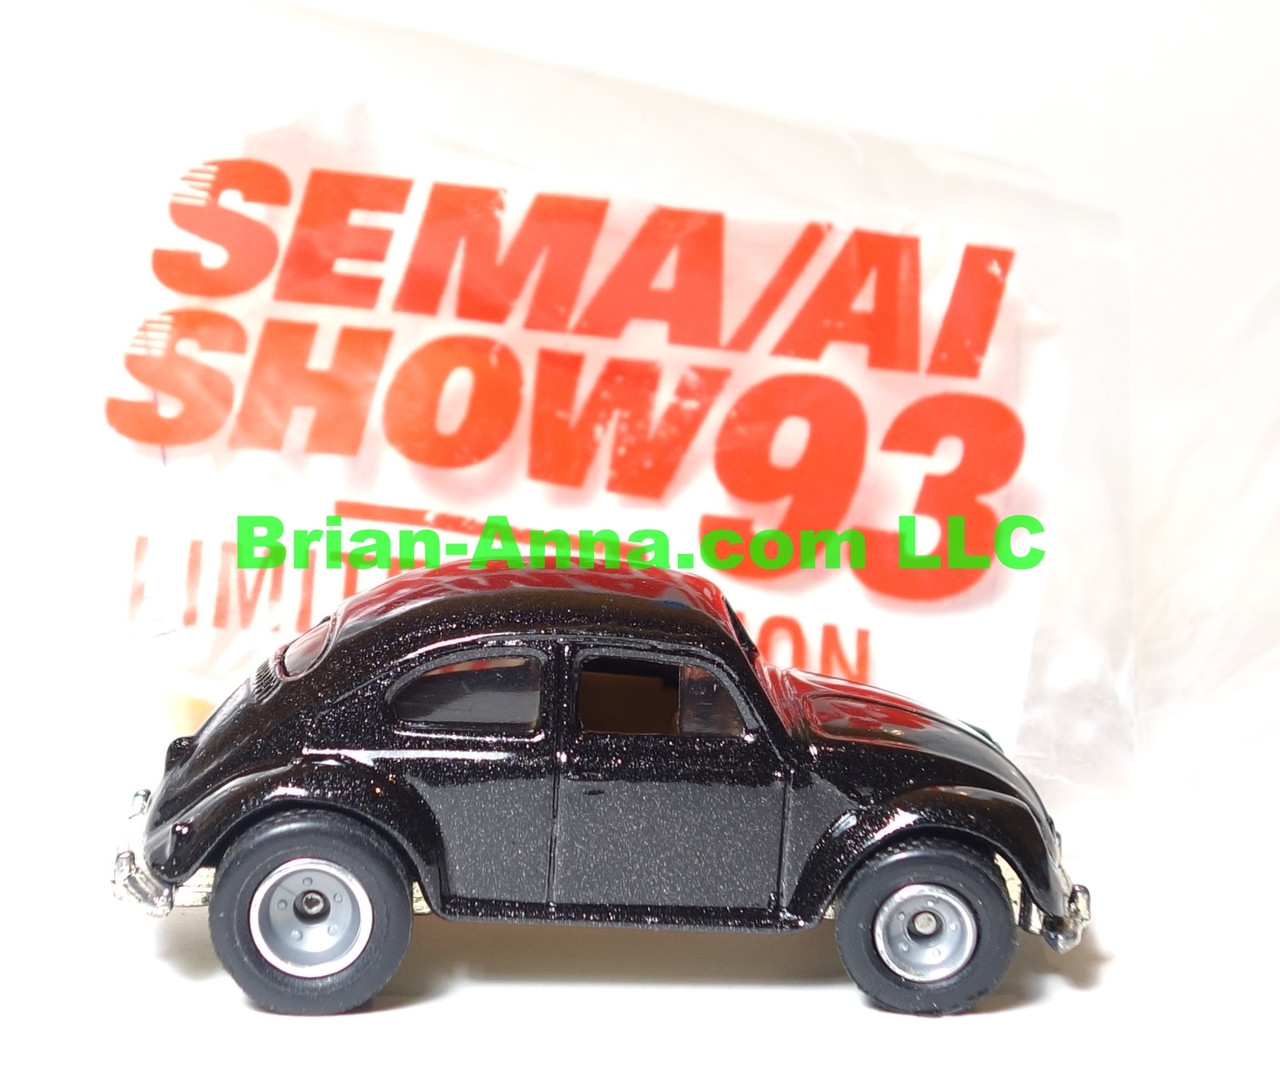 Hot Wheels 1993 SEMA Show Volkswagen Beetle promotional